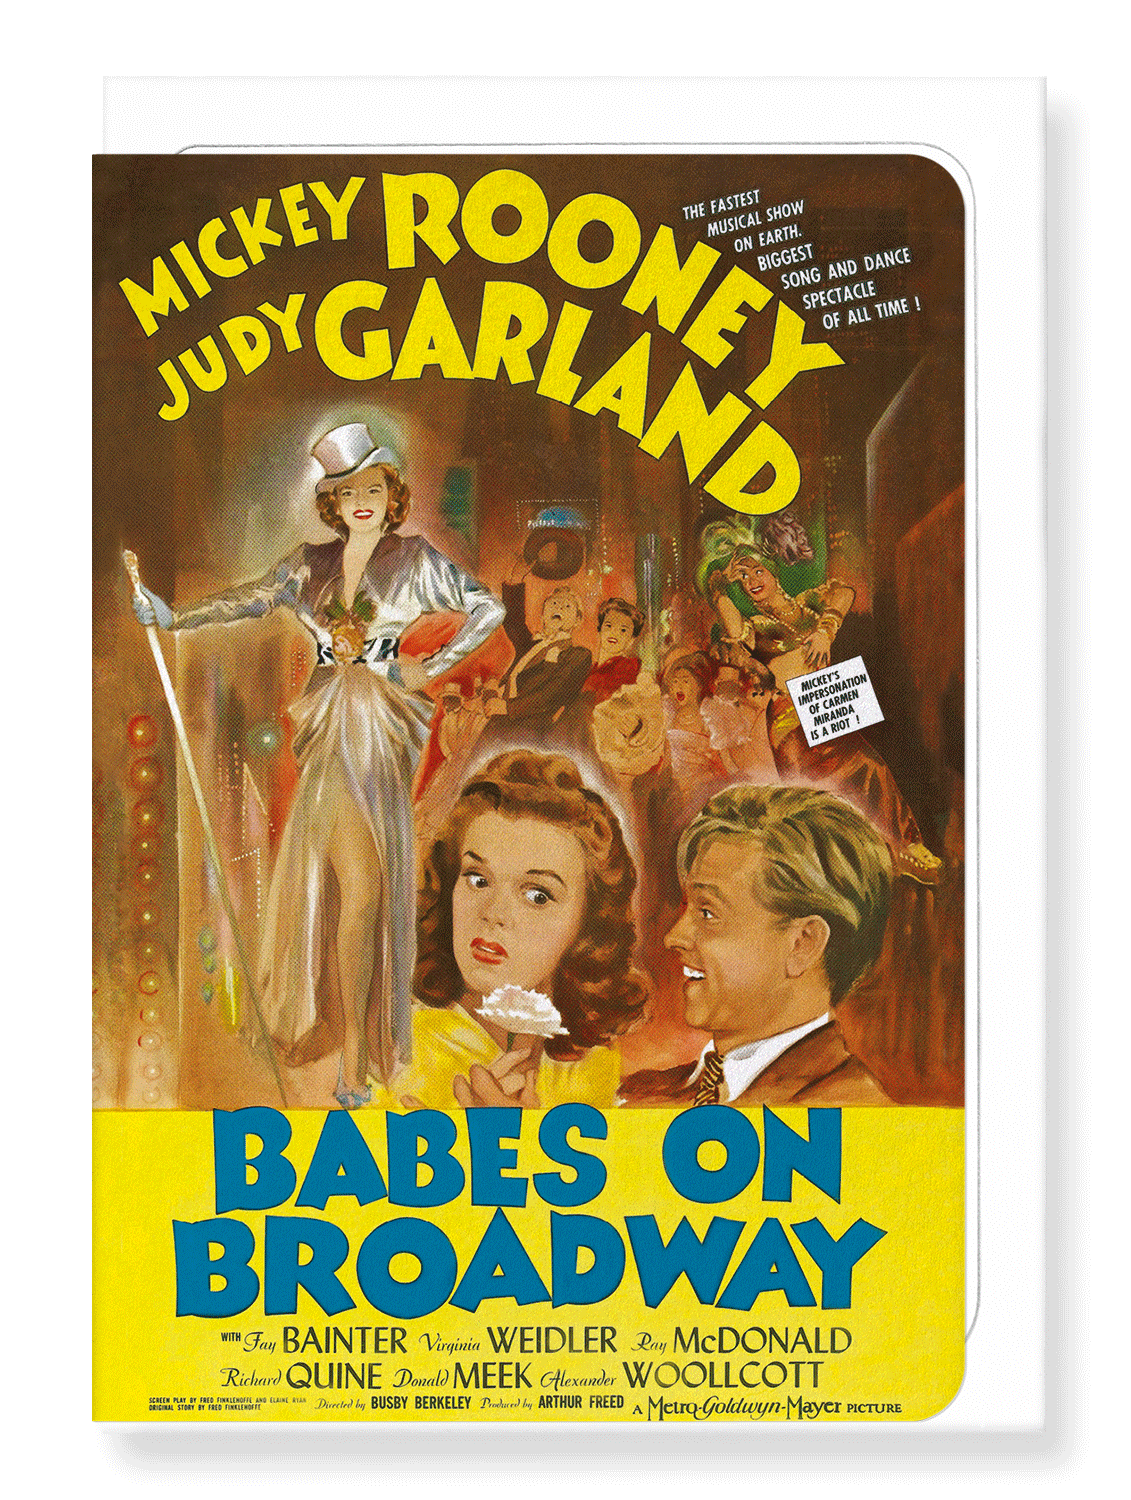 Ezen Designs - Babes on broadway (1941) - Greeting Card - Front